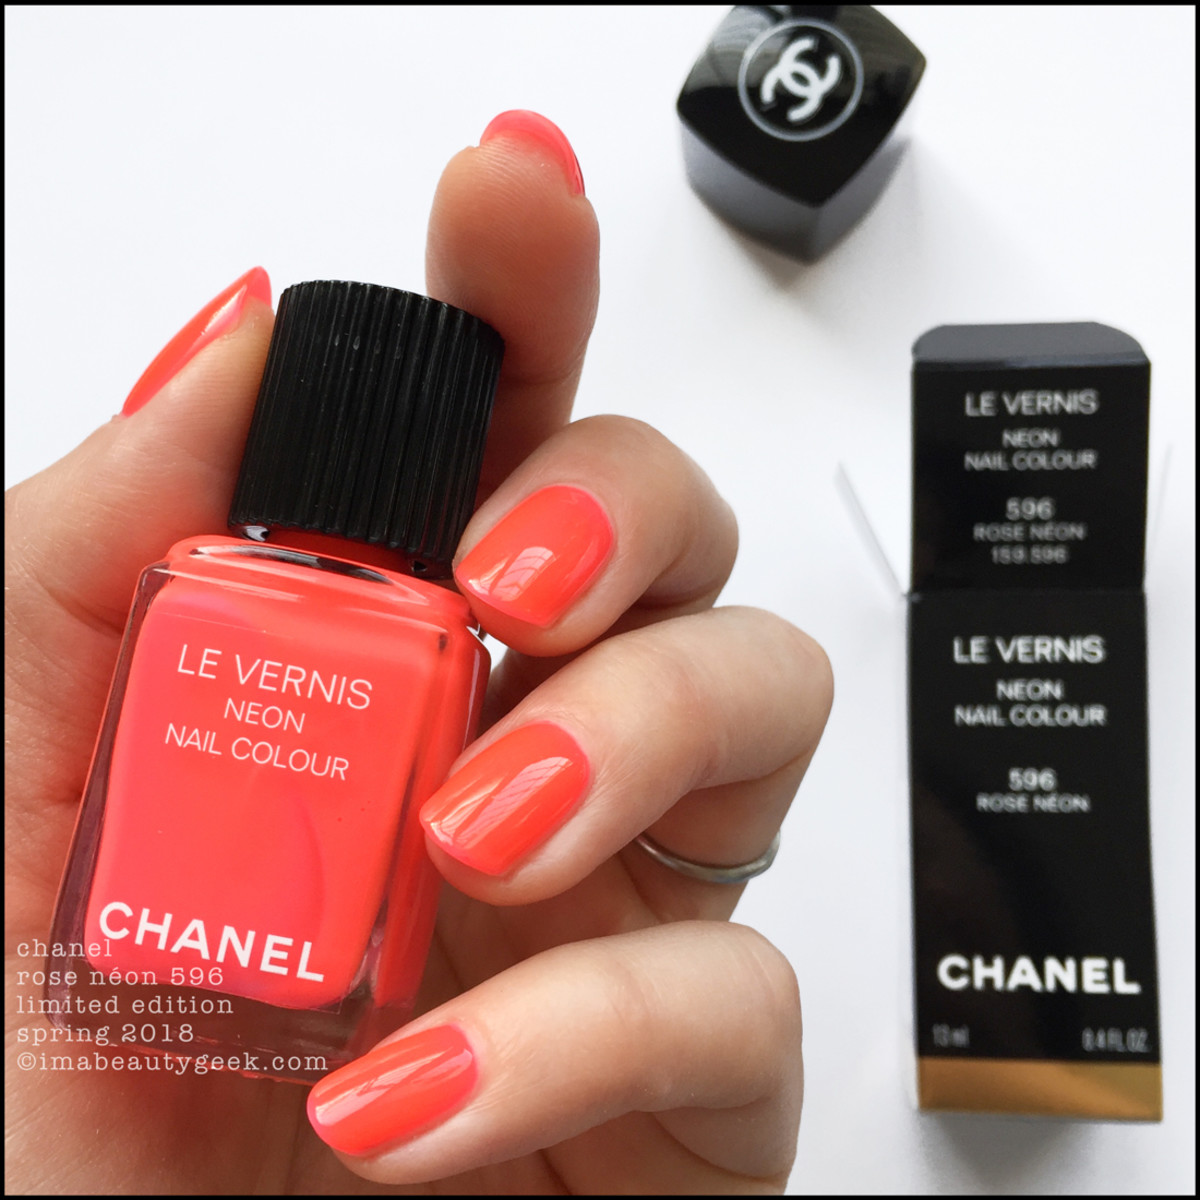 Chanel Rose Neon 596 Le Vernis Spring 2018 Limited Edition